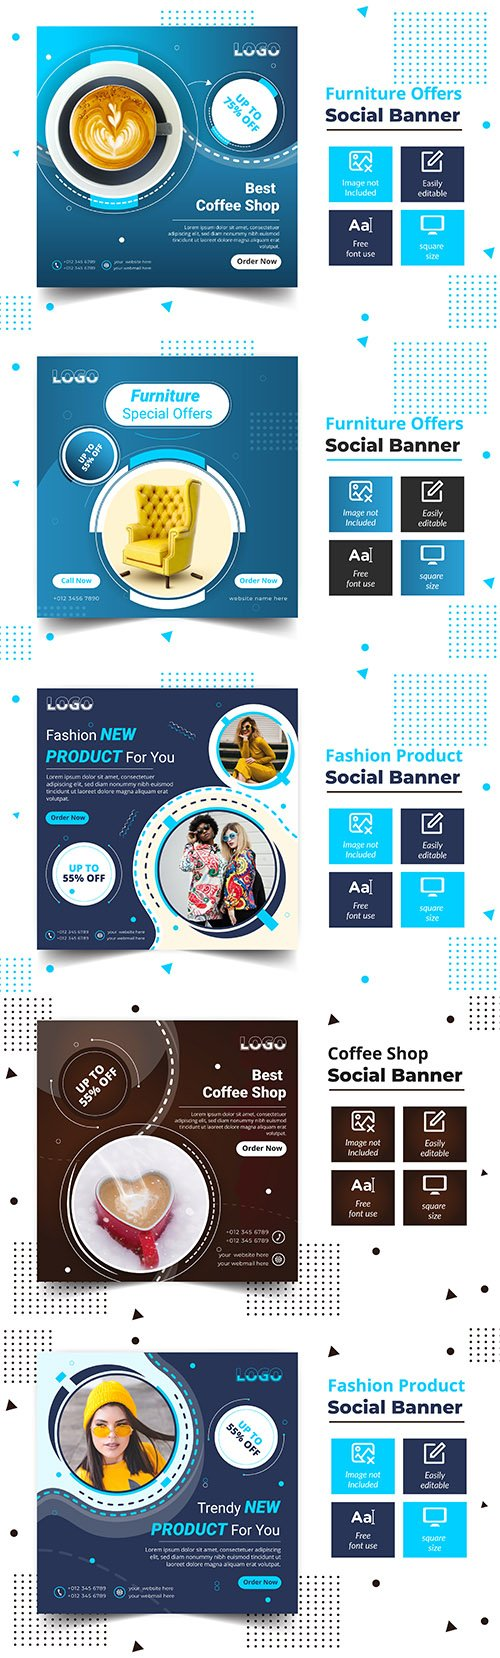 Fashion product offers post square banner template